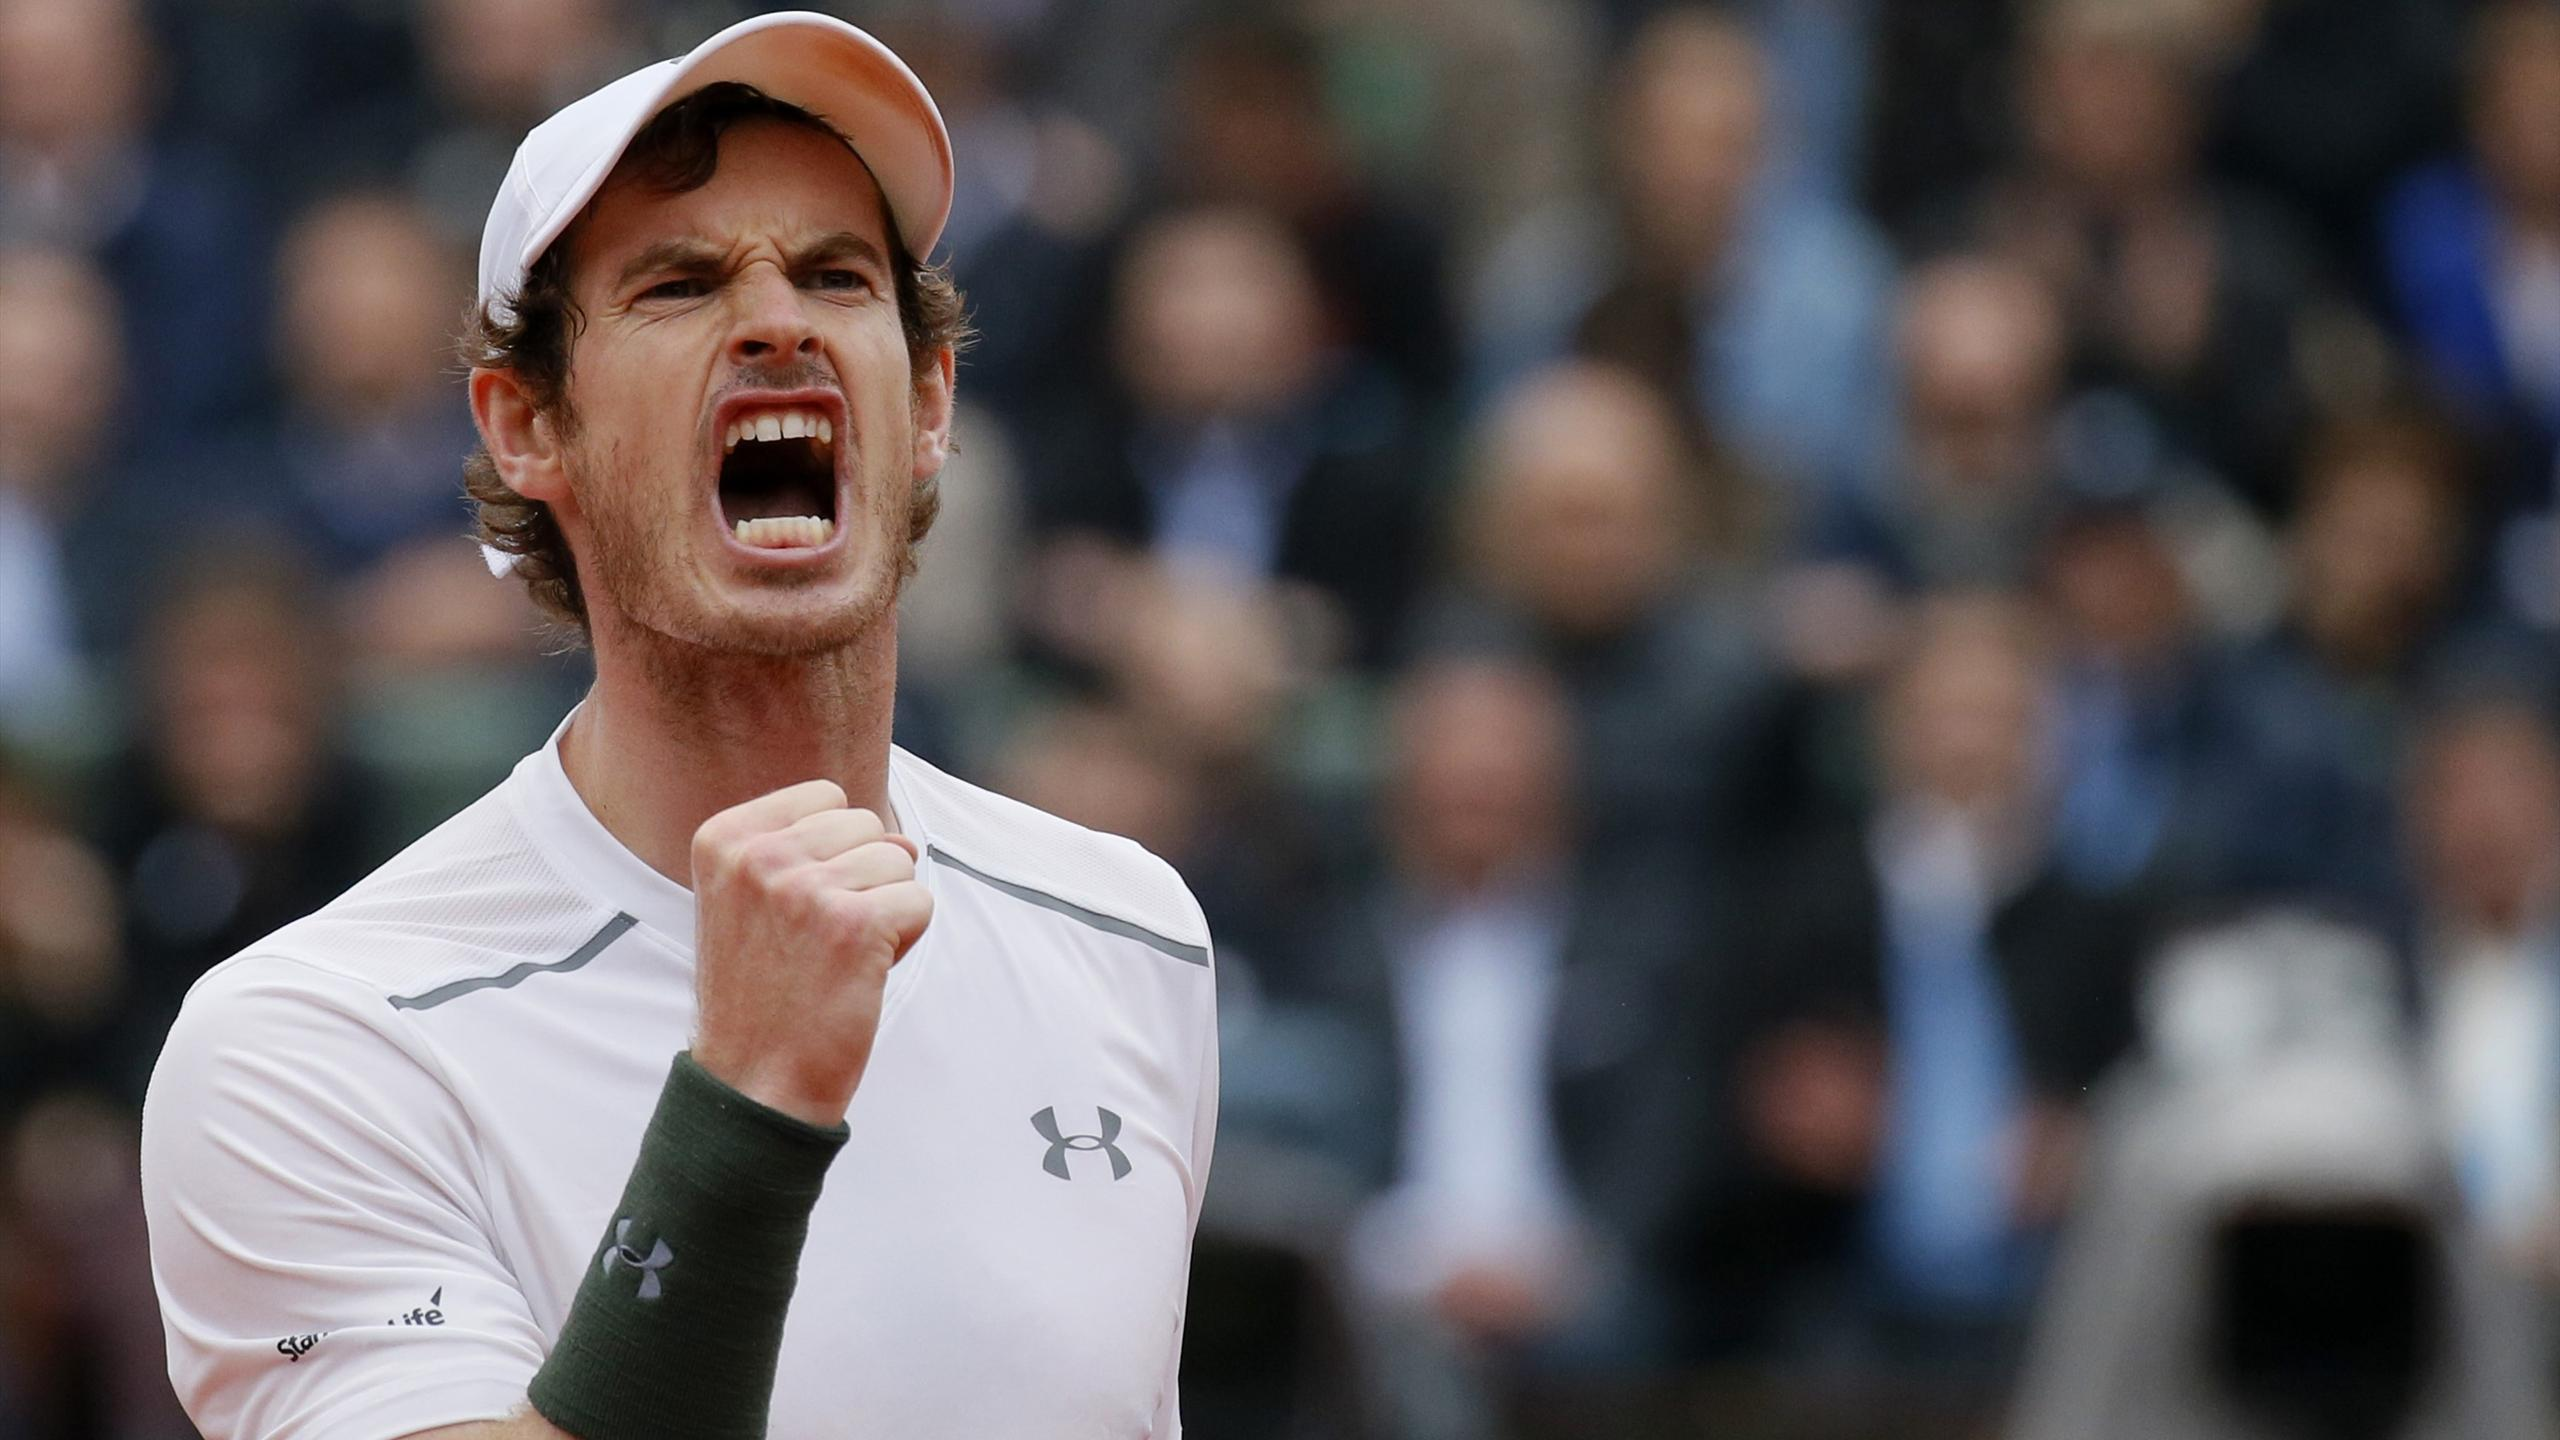 Andy Murray reacts during his match against Richard Gasquet at Roland Garros